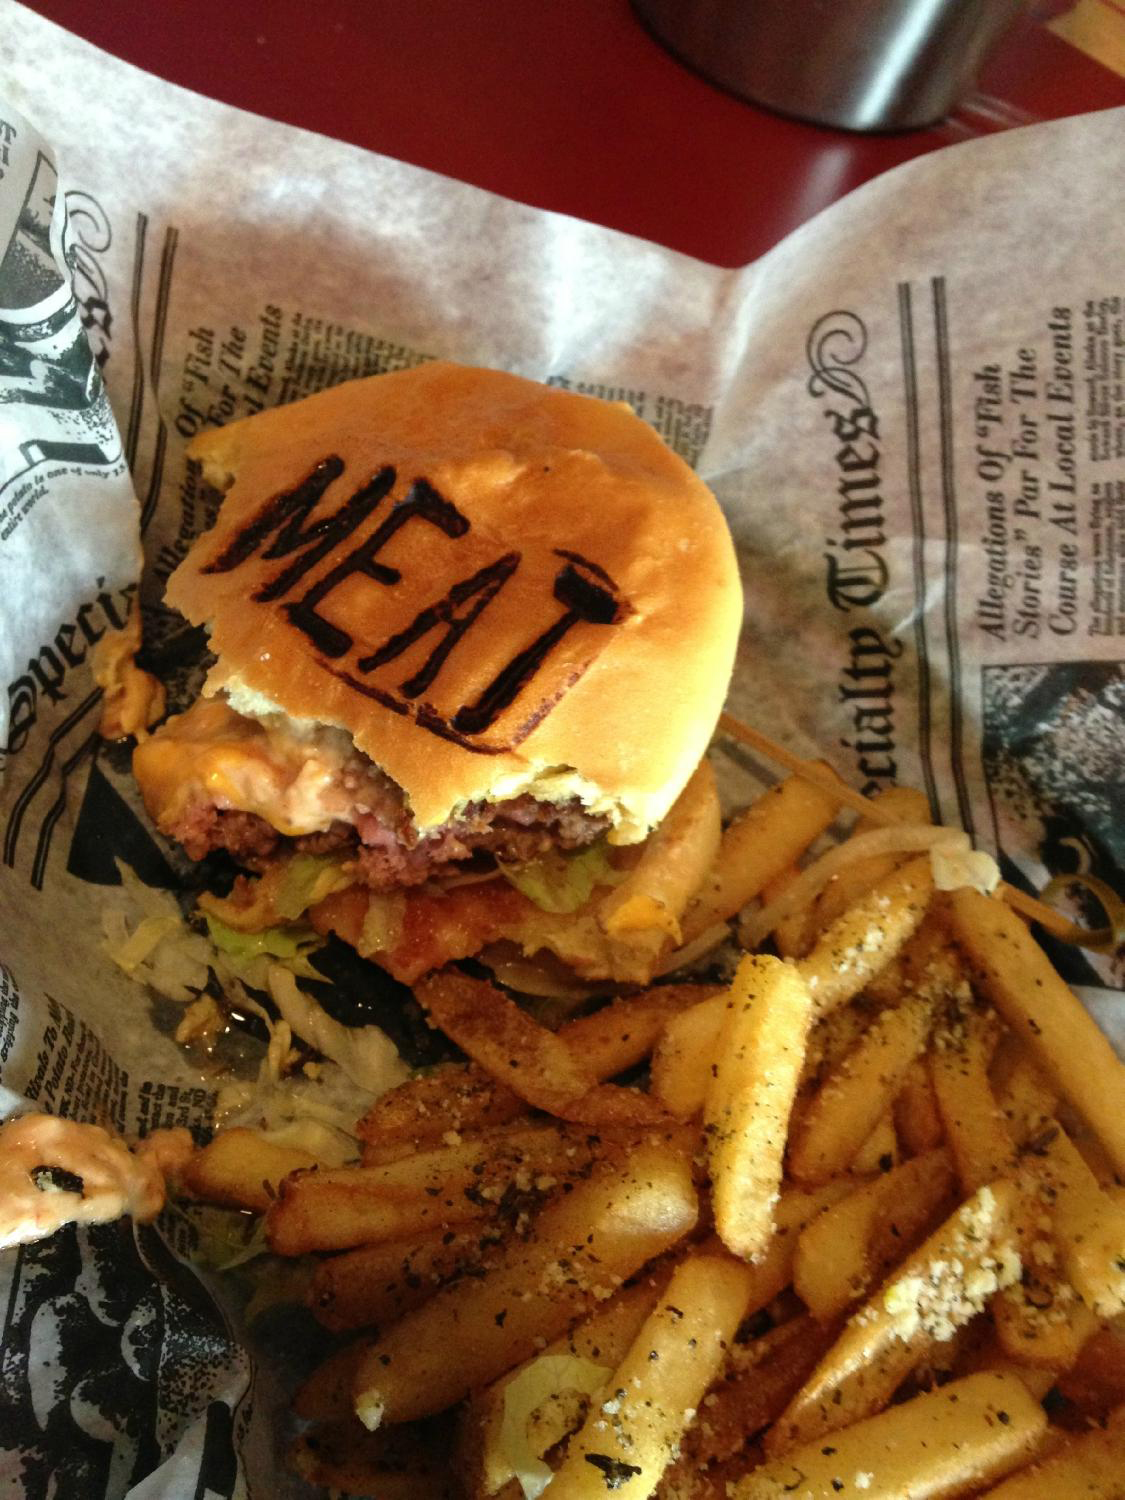 MEAT Eatery And Taproom in Islamorada, FL is one of America's top burger joints, according to TripAdvisor reviewers. (A TripAdvisor traveler photo)